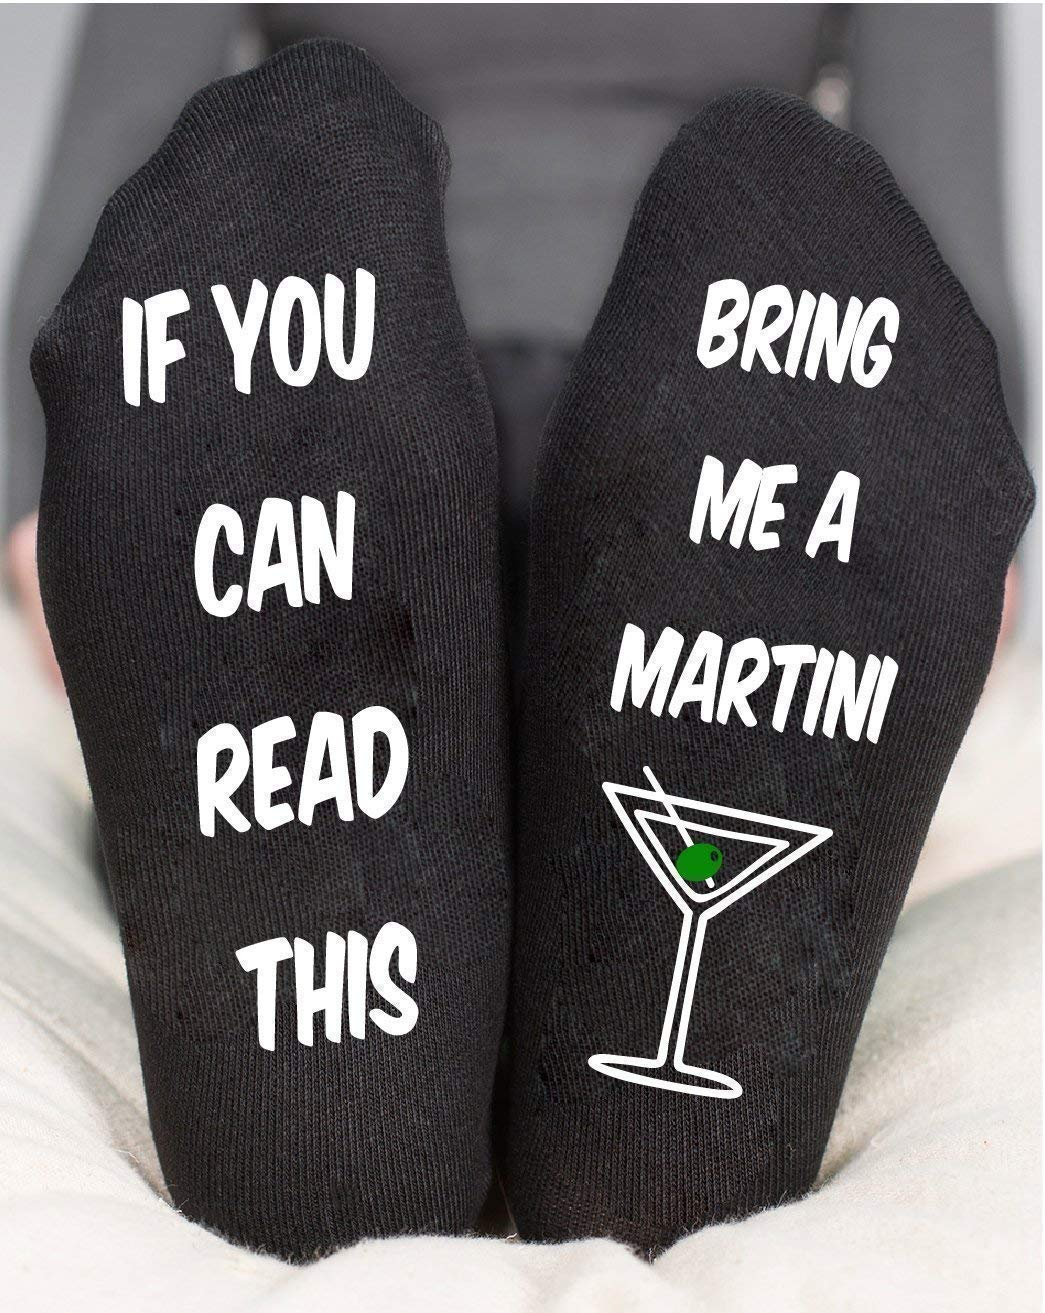 Martini Socks For Women's Funny Men's Birthday Christmas Gifts